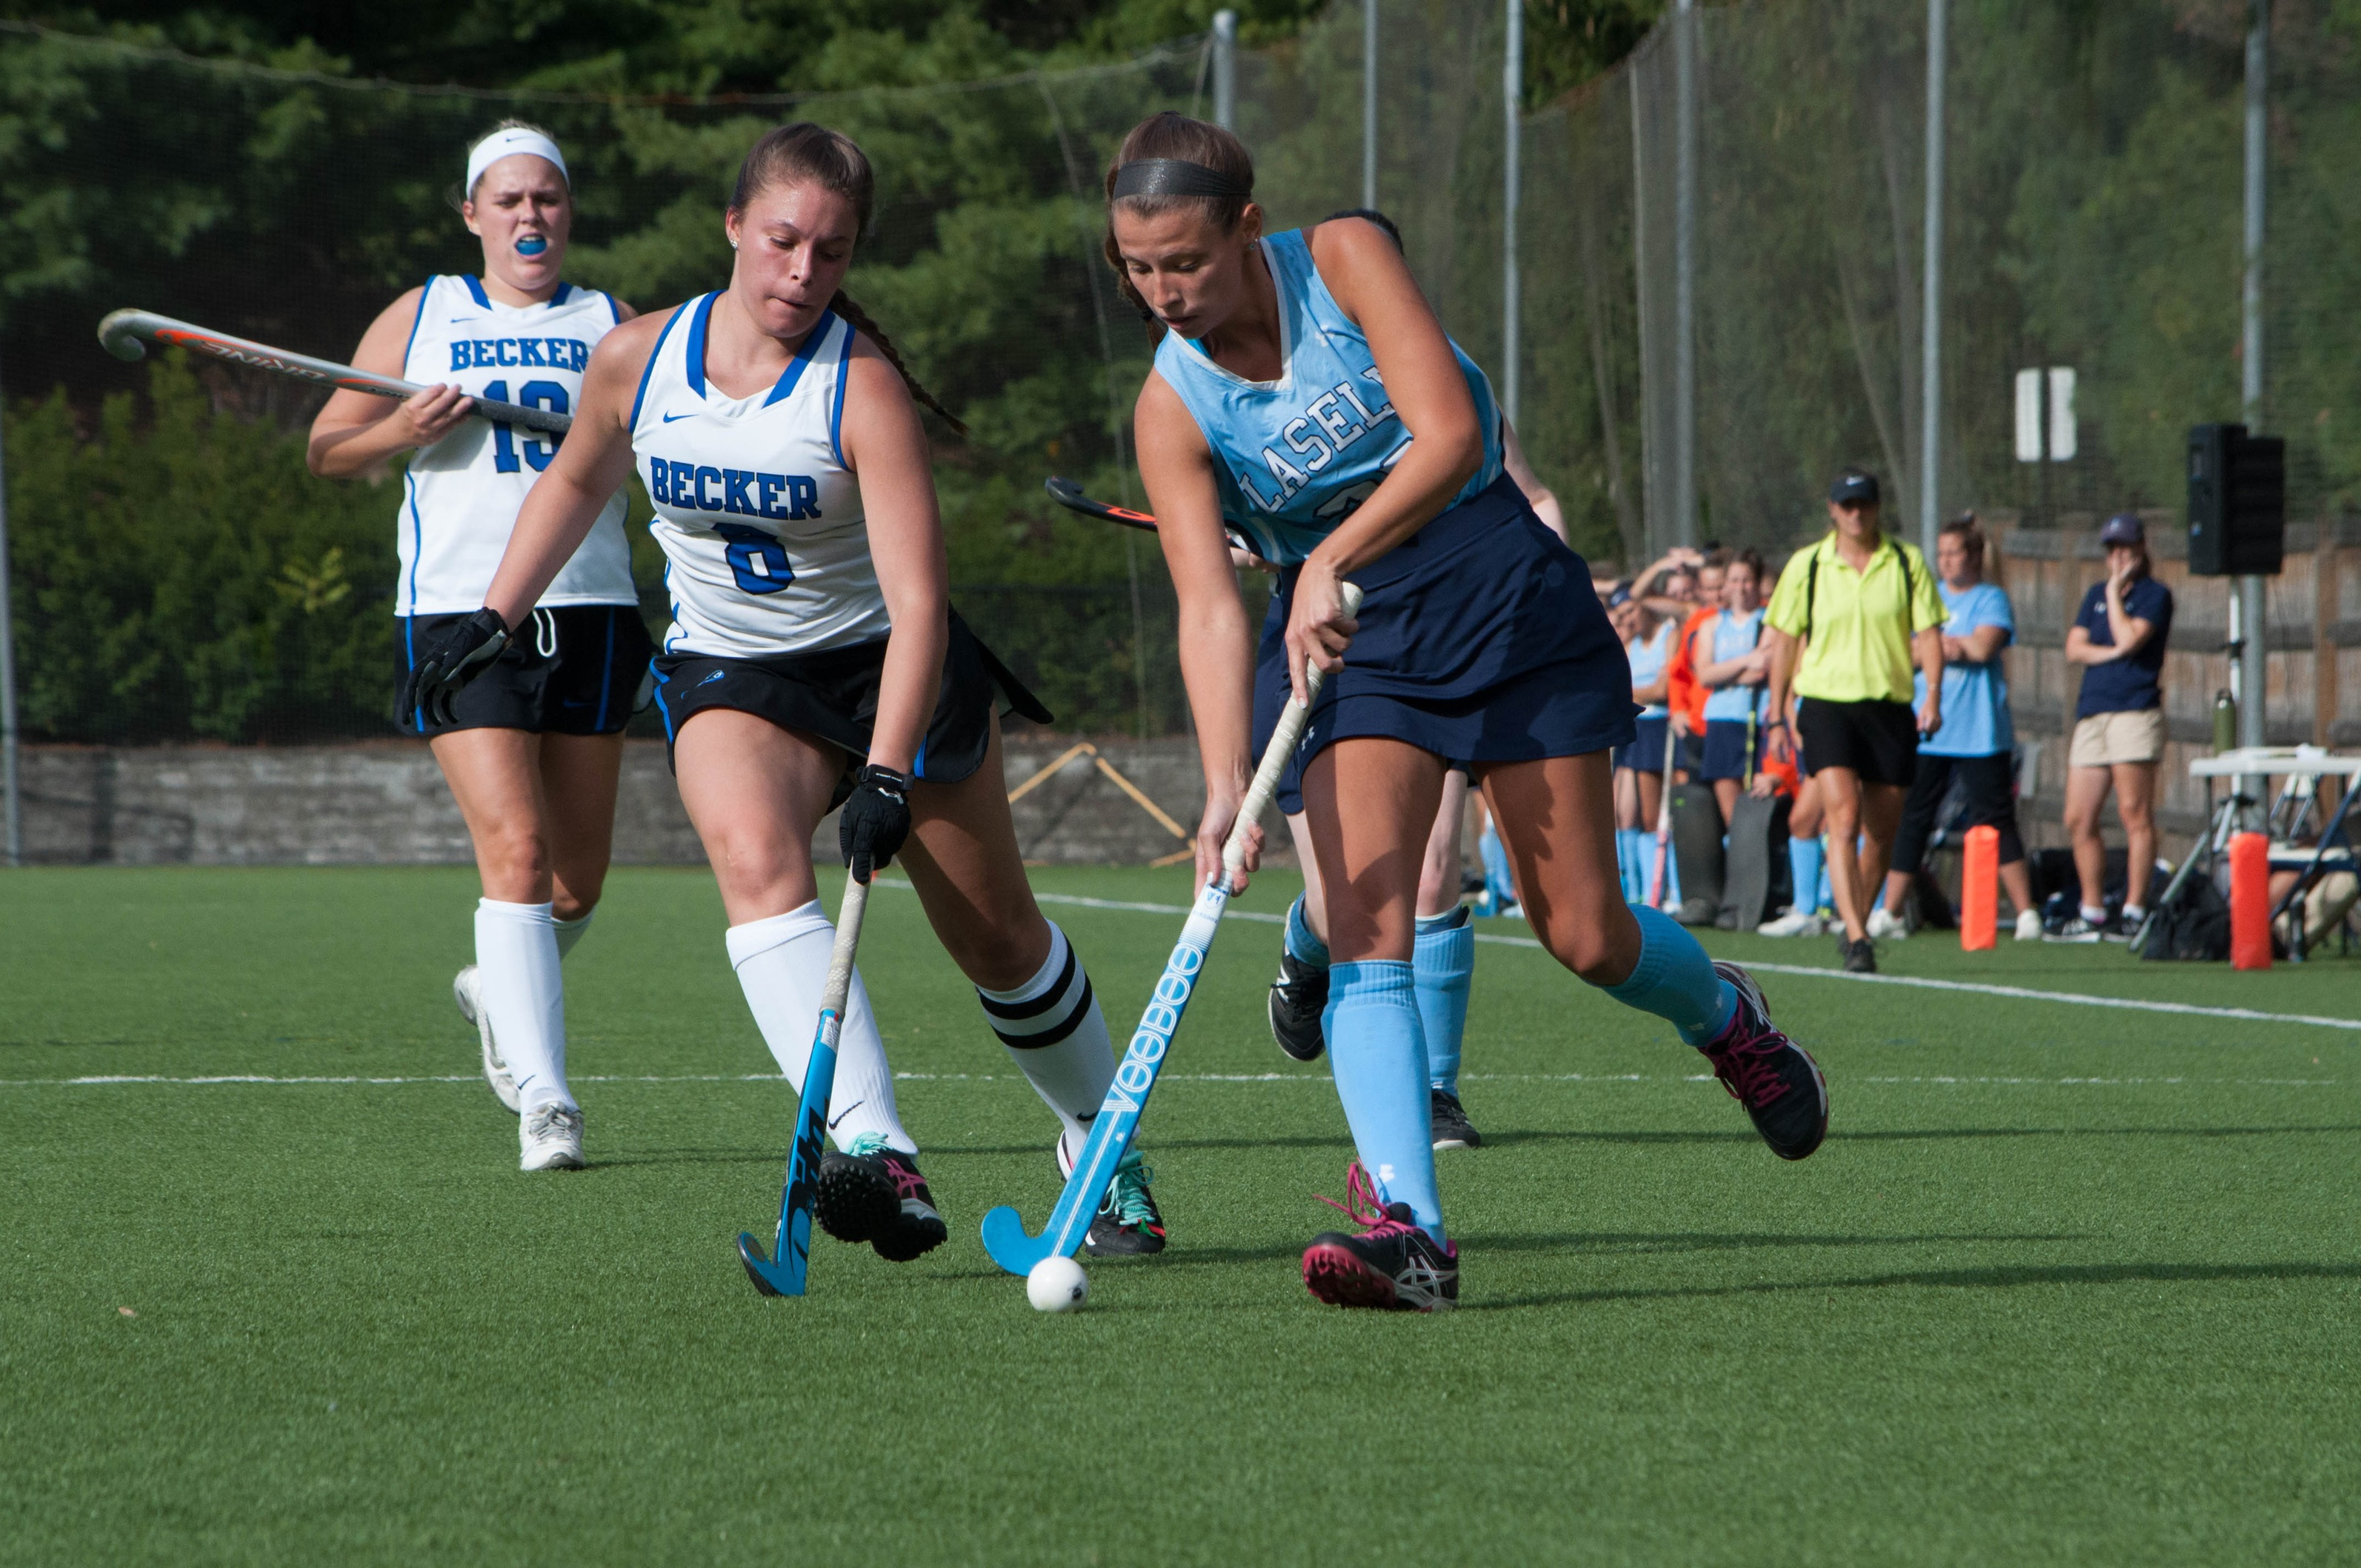 Keene State Edges Lasell in Field Hockey with Overtime Goal